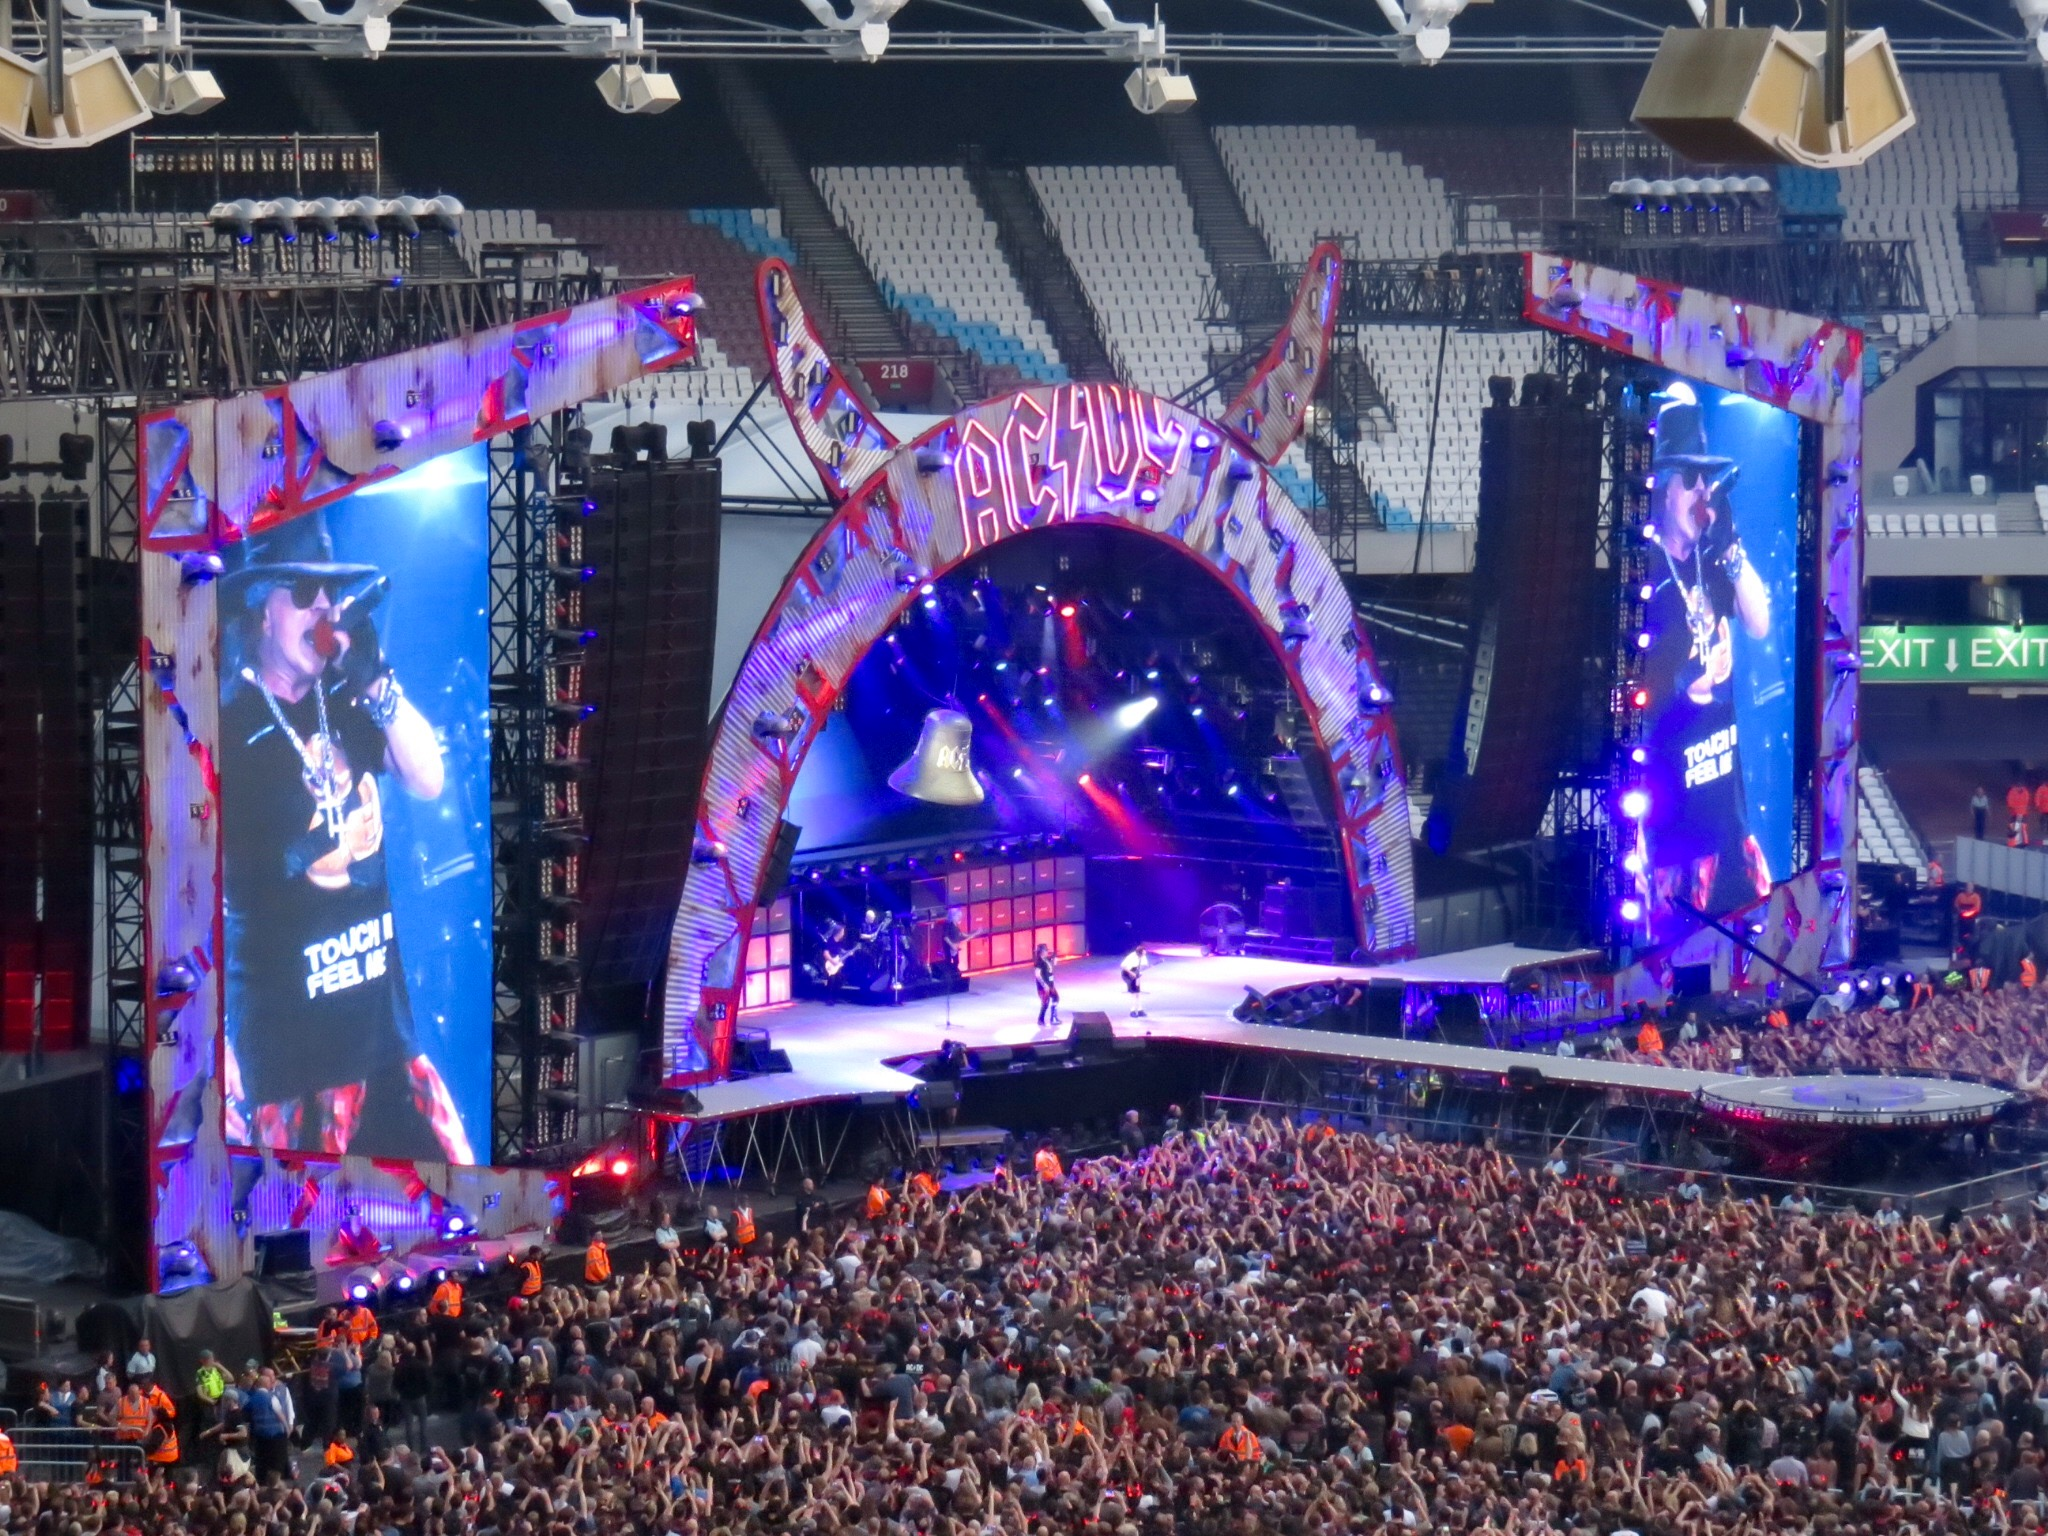 AC DC With Axl Rose Performing The First Concert At Olympic Stadium 4 June 2016